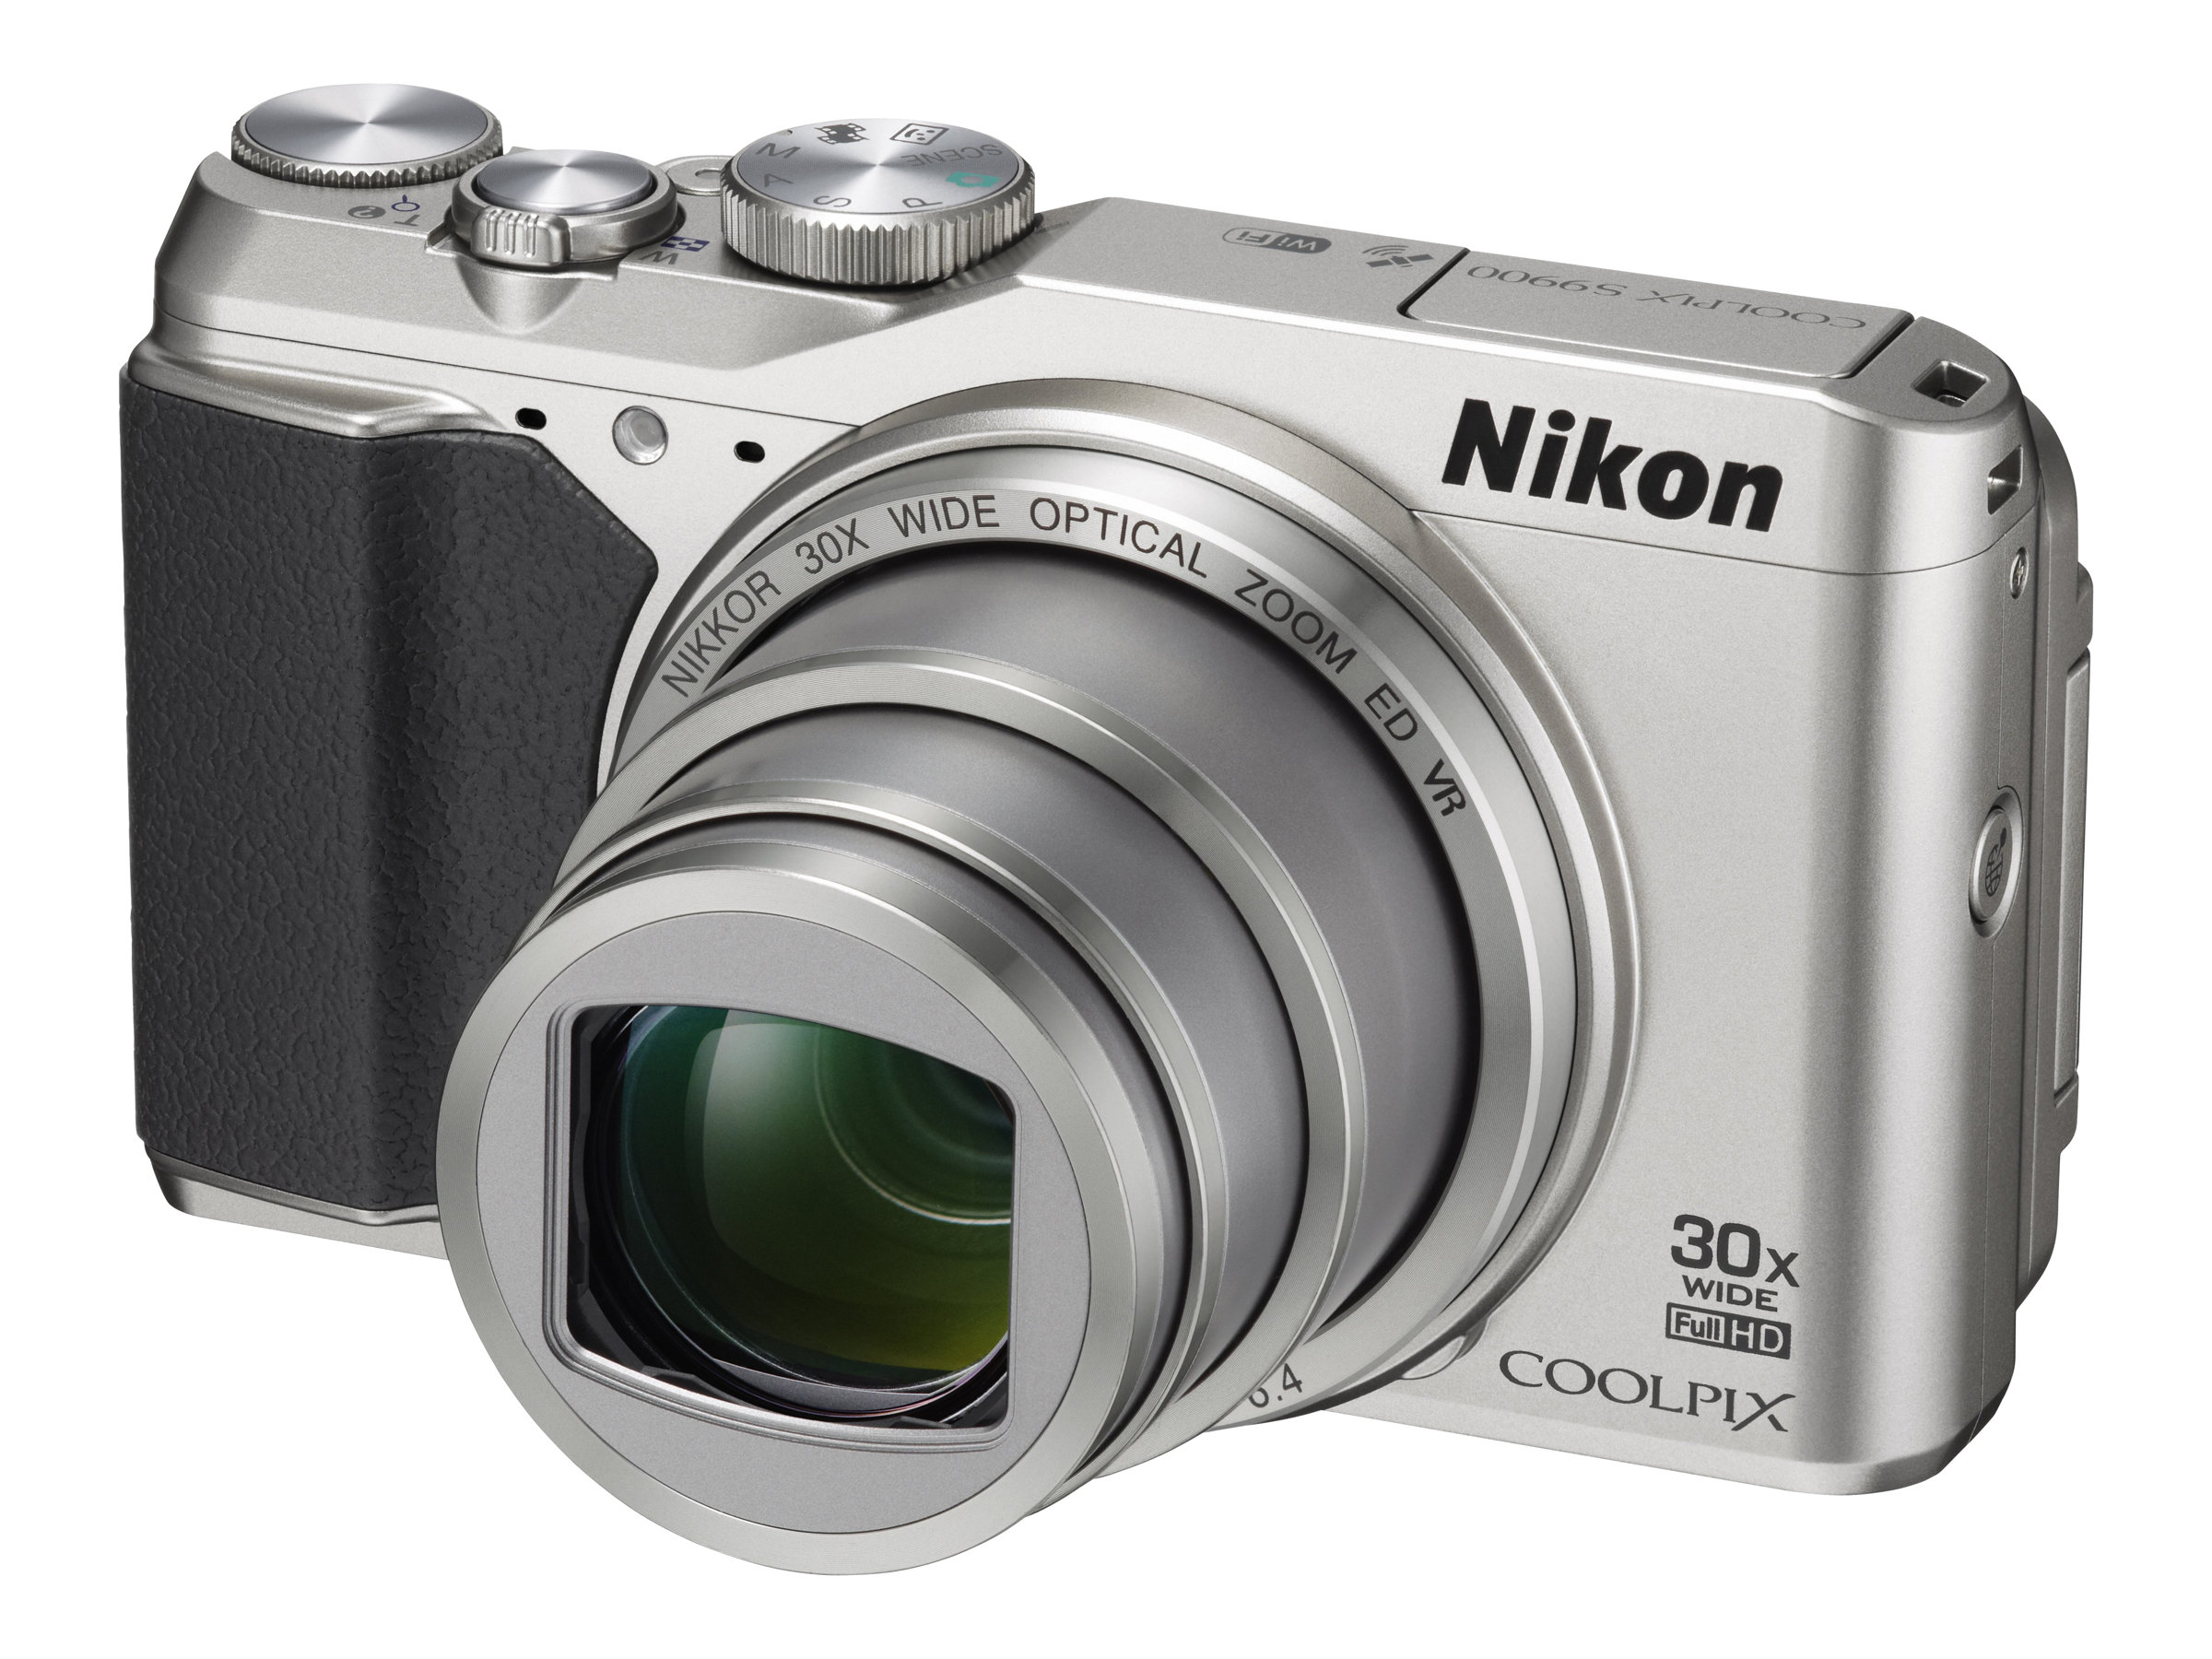 Nikon COOLPIX S9900 Digital Camera, Silver